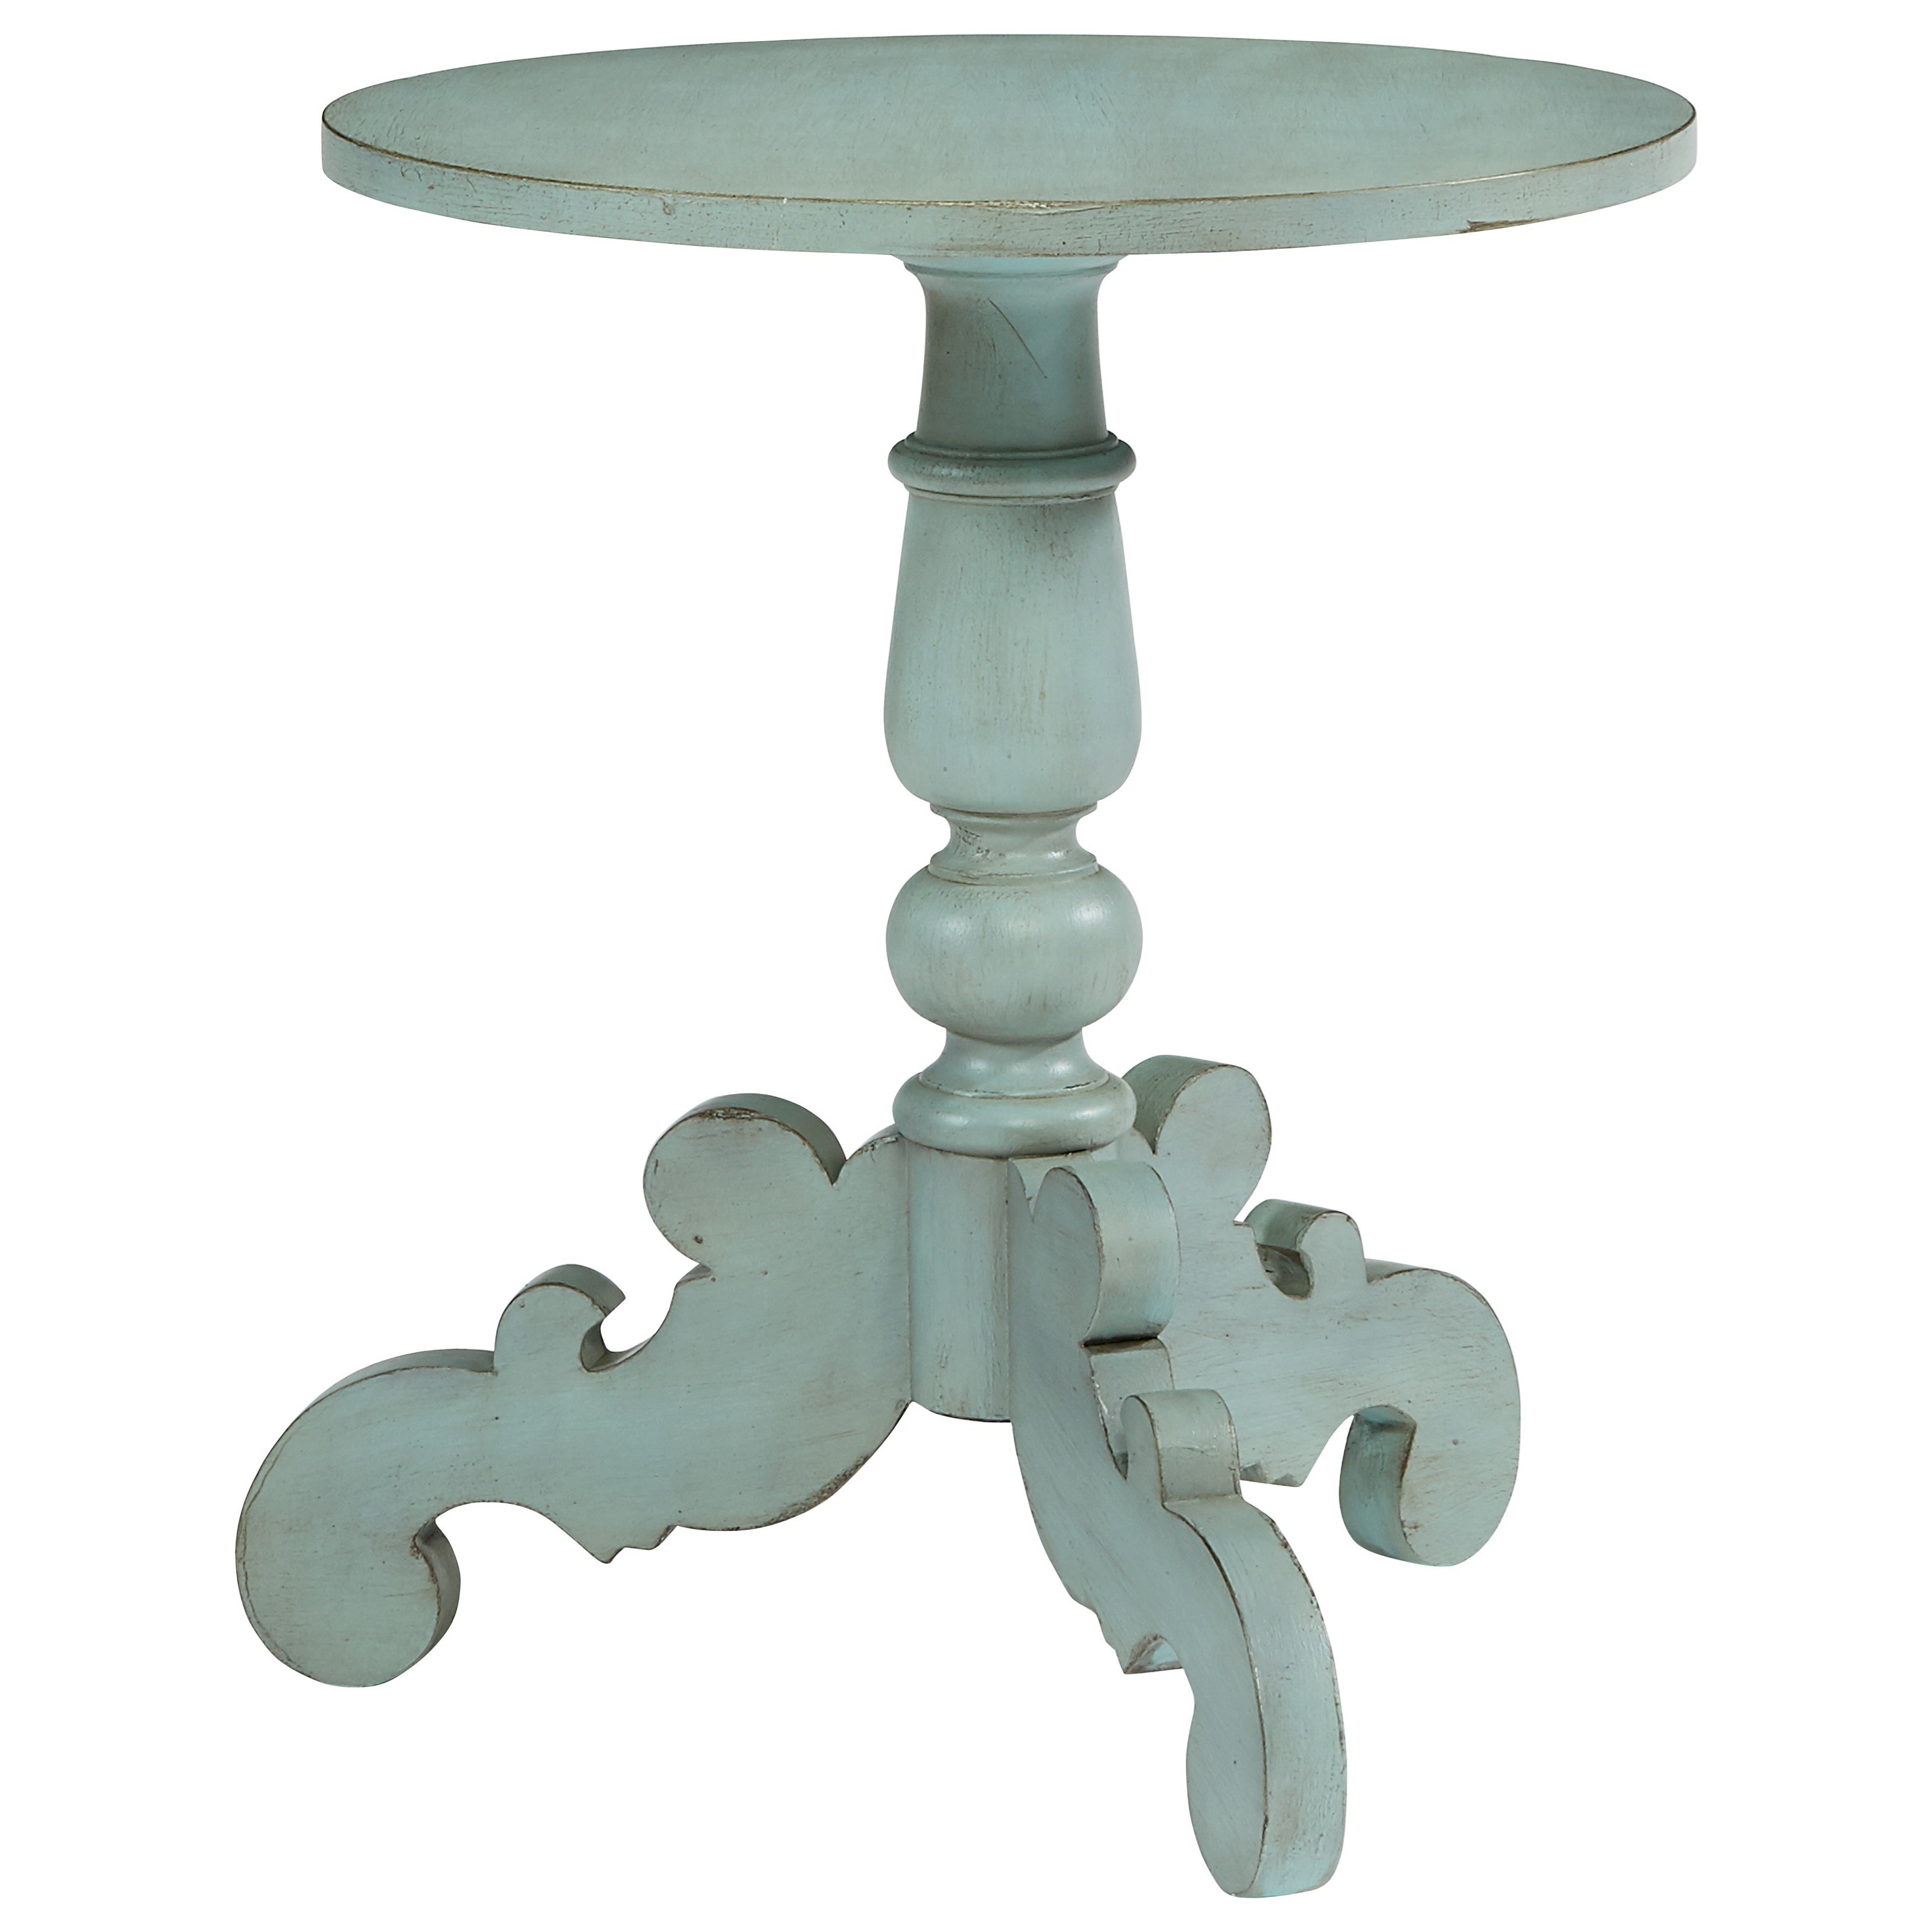 Magnolia Home by Joanna Gaines French Inspired Tripod Hall Table - Item Number: 3020122D